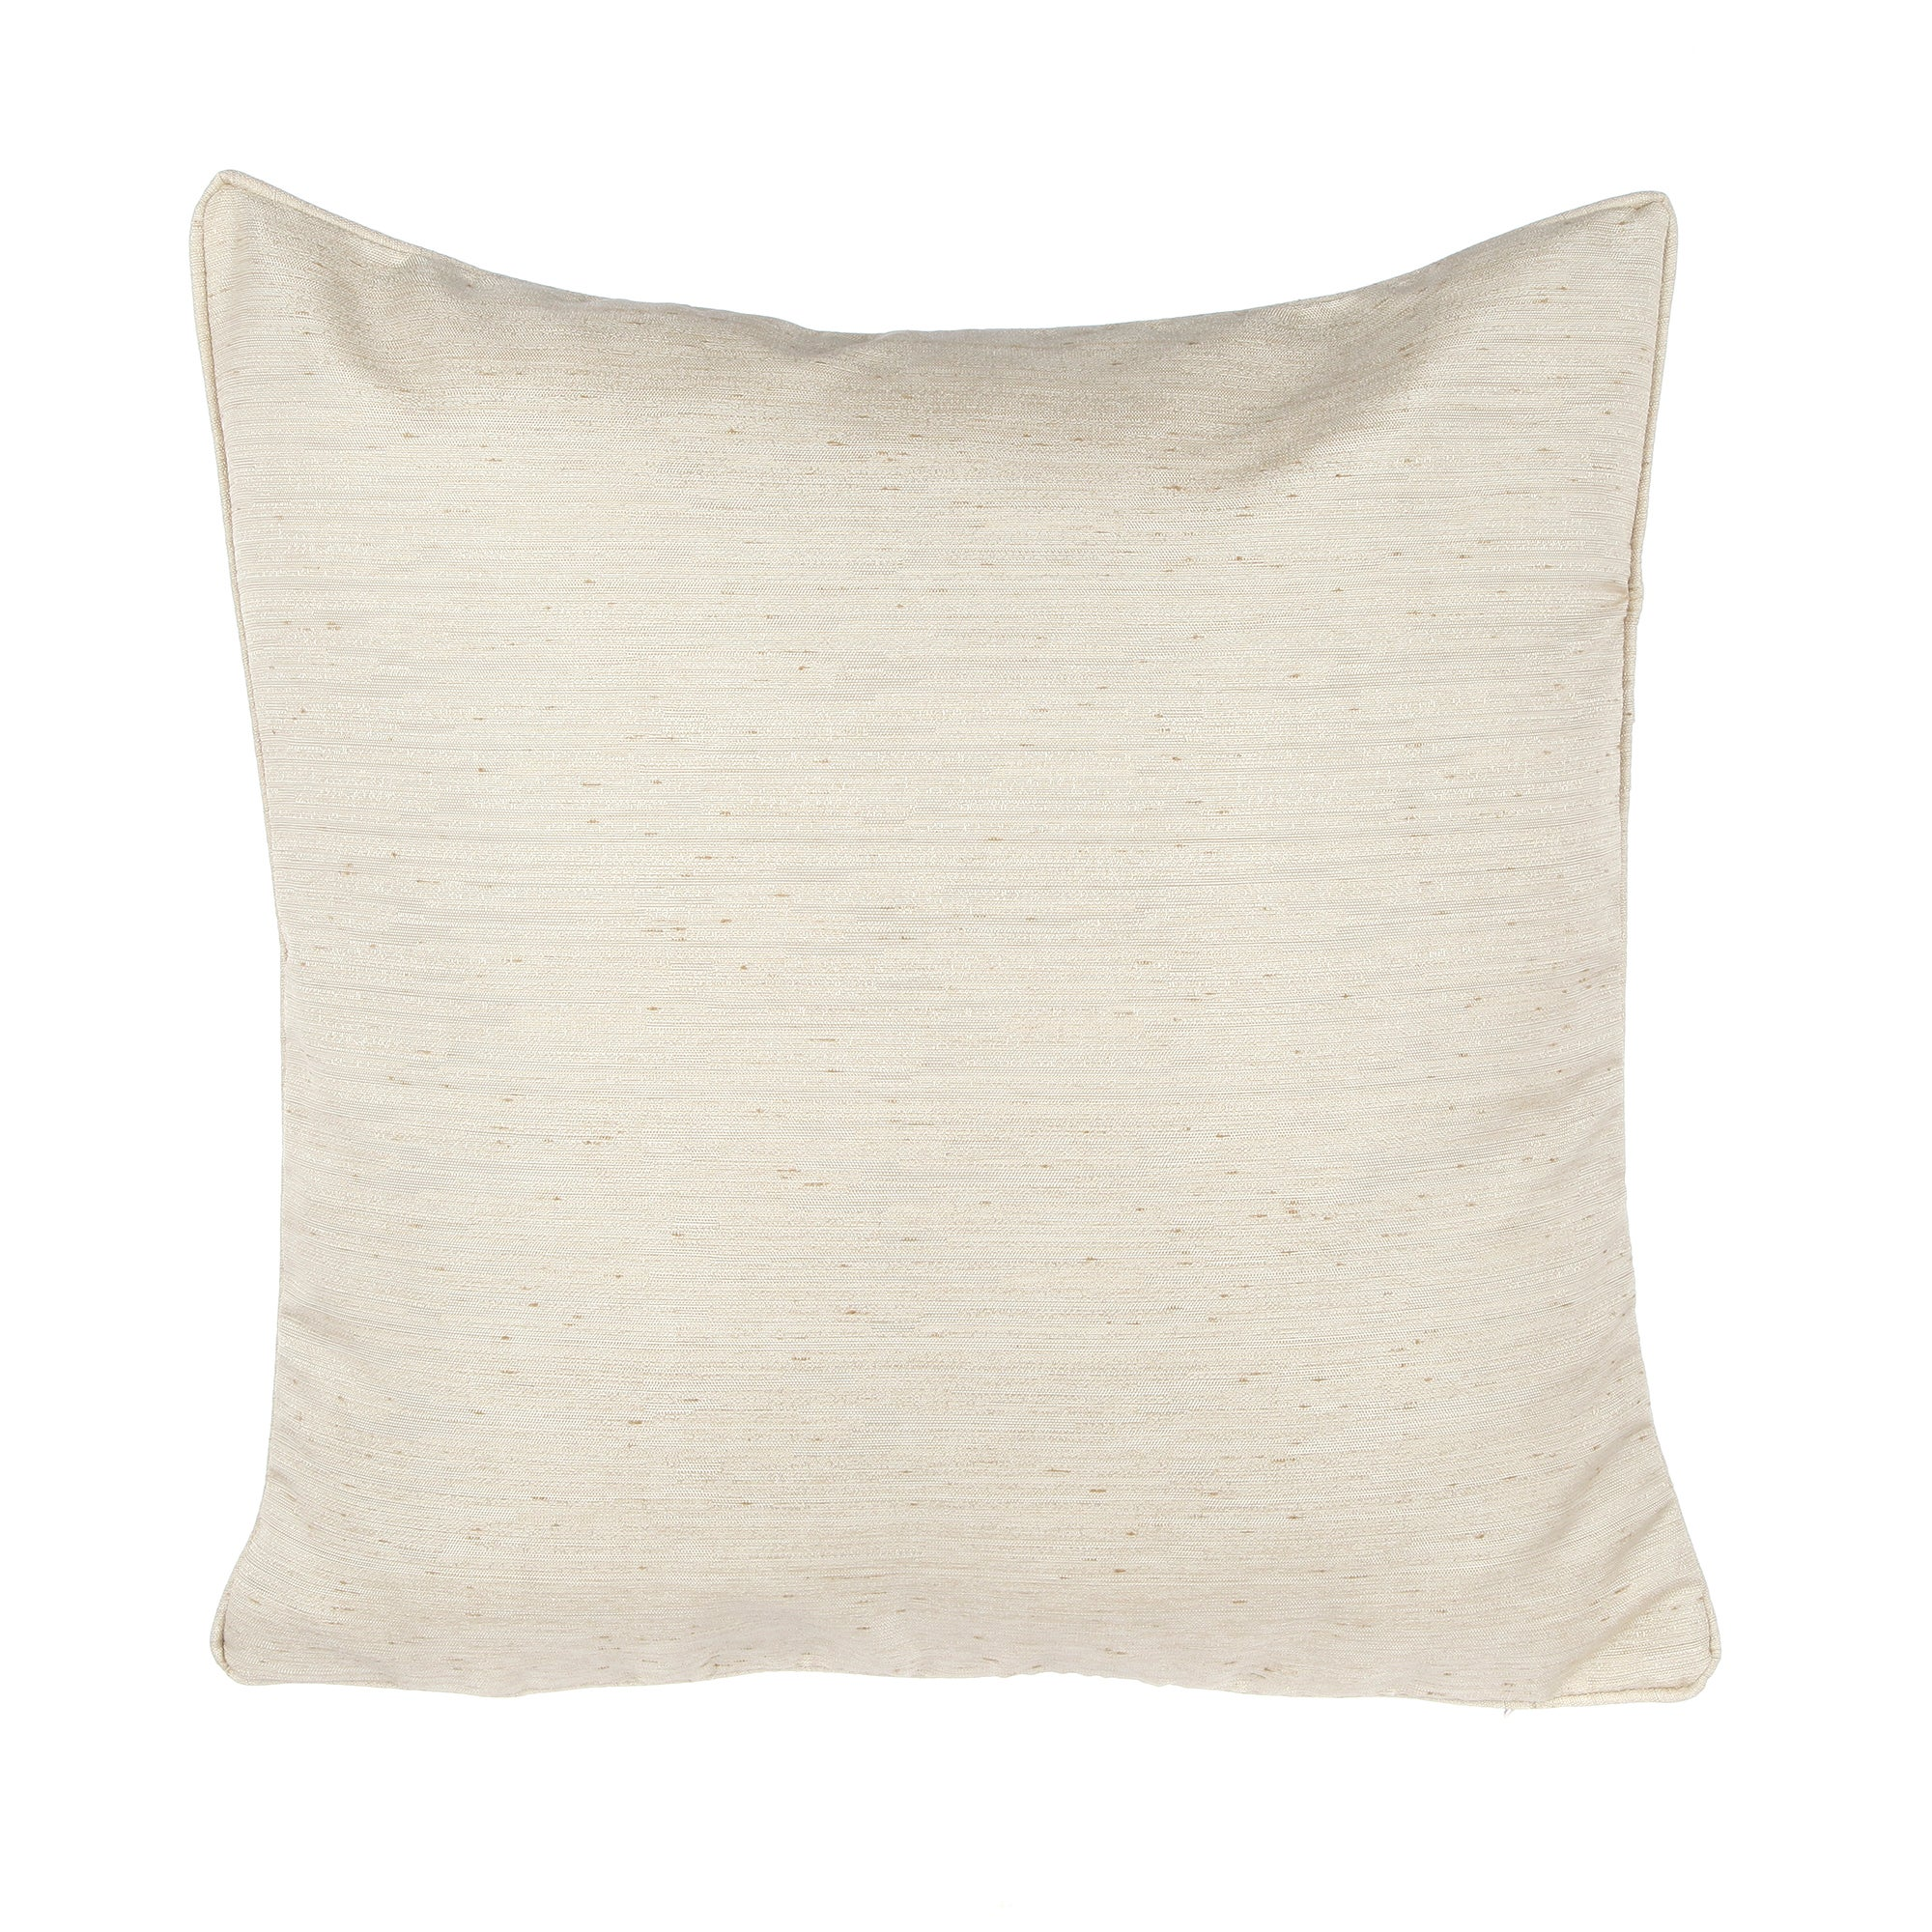 Matka Cushion